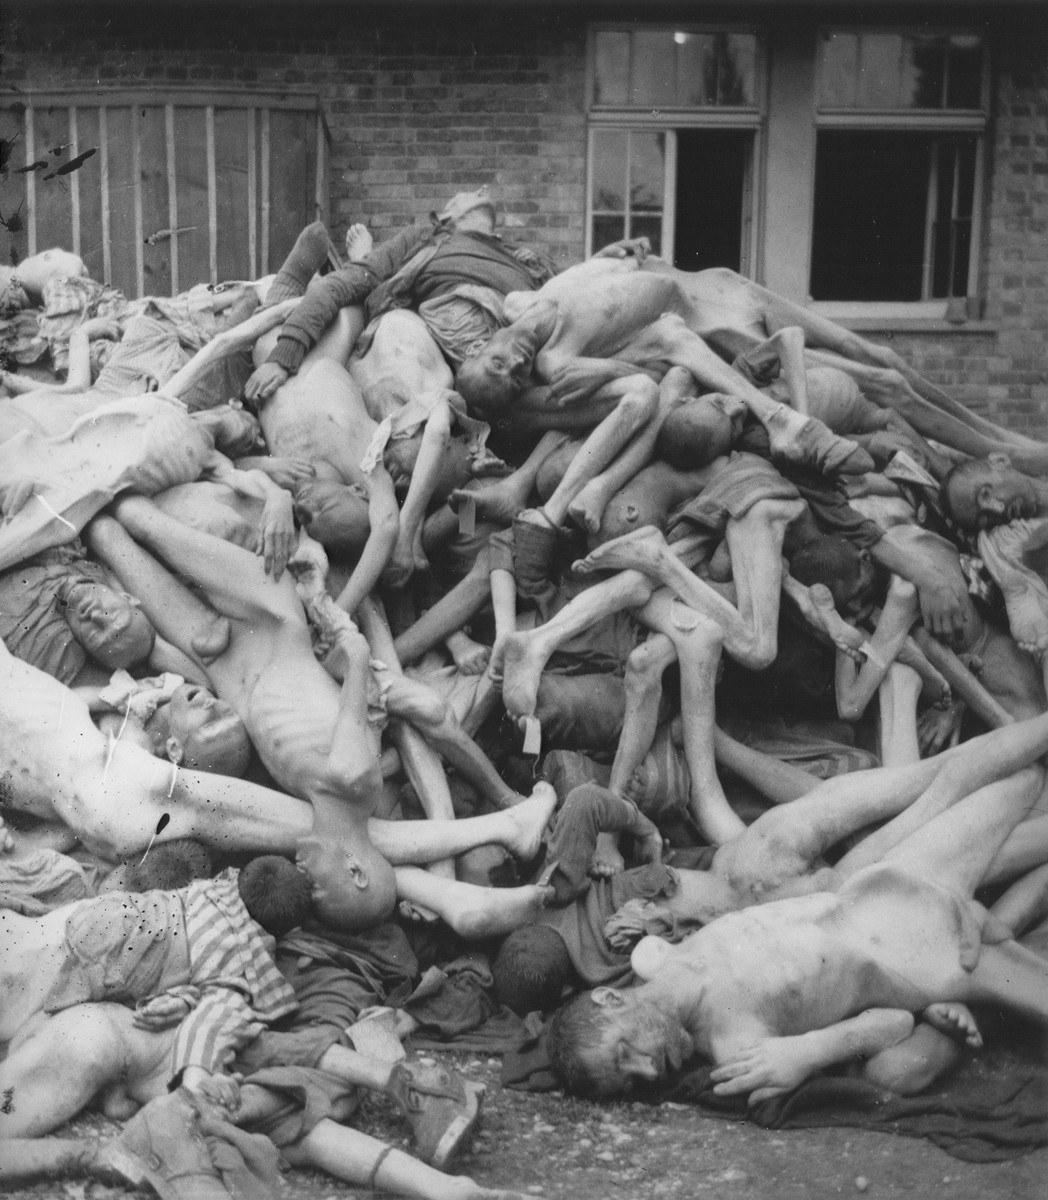 View of a pile of corpses outside the crematorium.